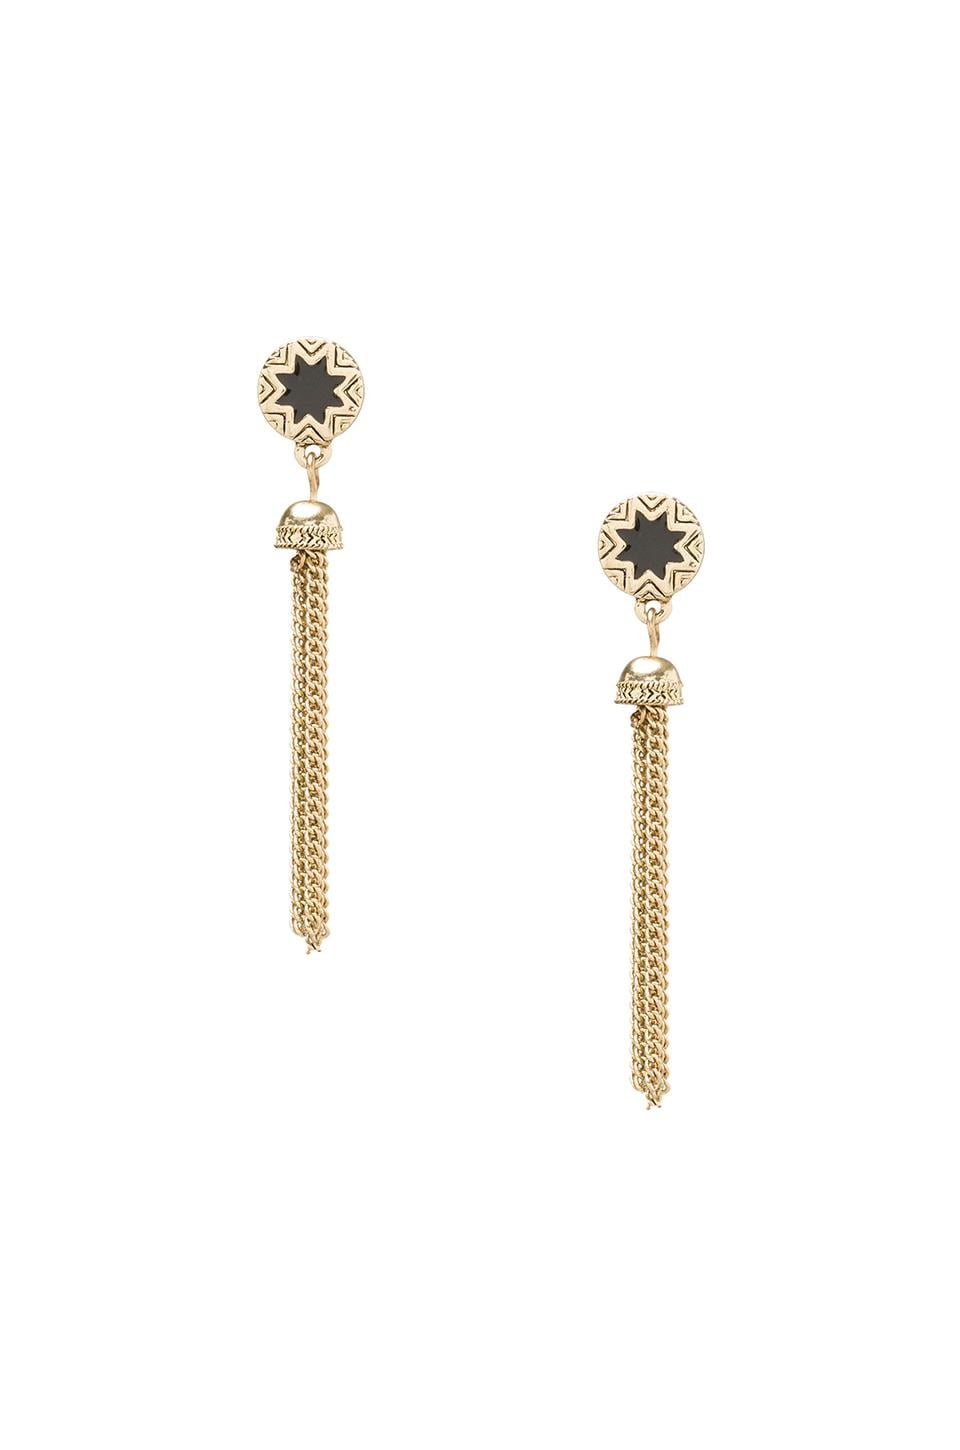 House of Harlow 1960 House of Harlow Sunburst Tassel Earrings Enamel in Gold Tone Black